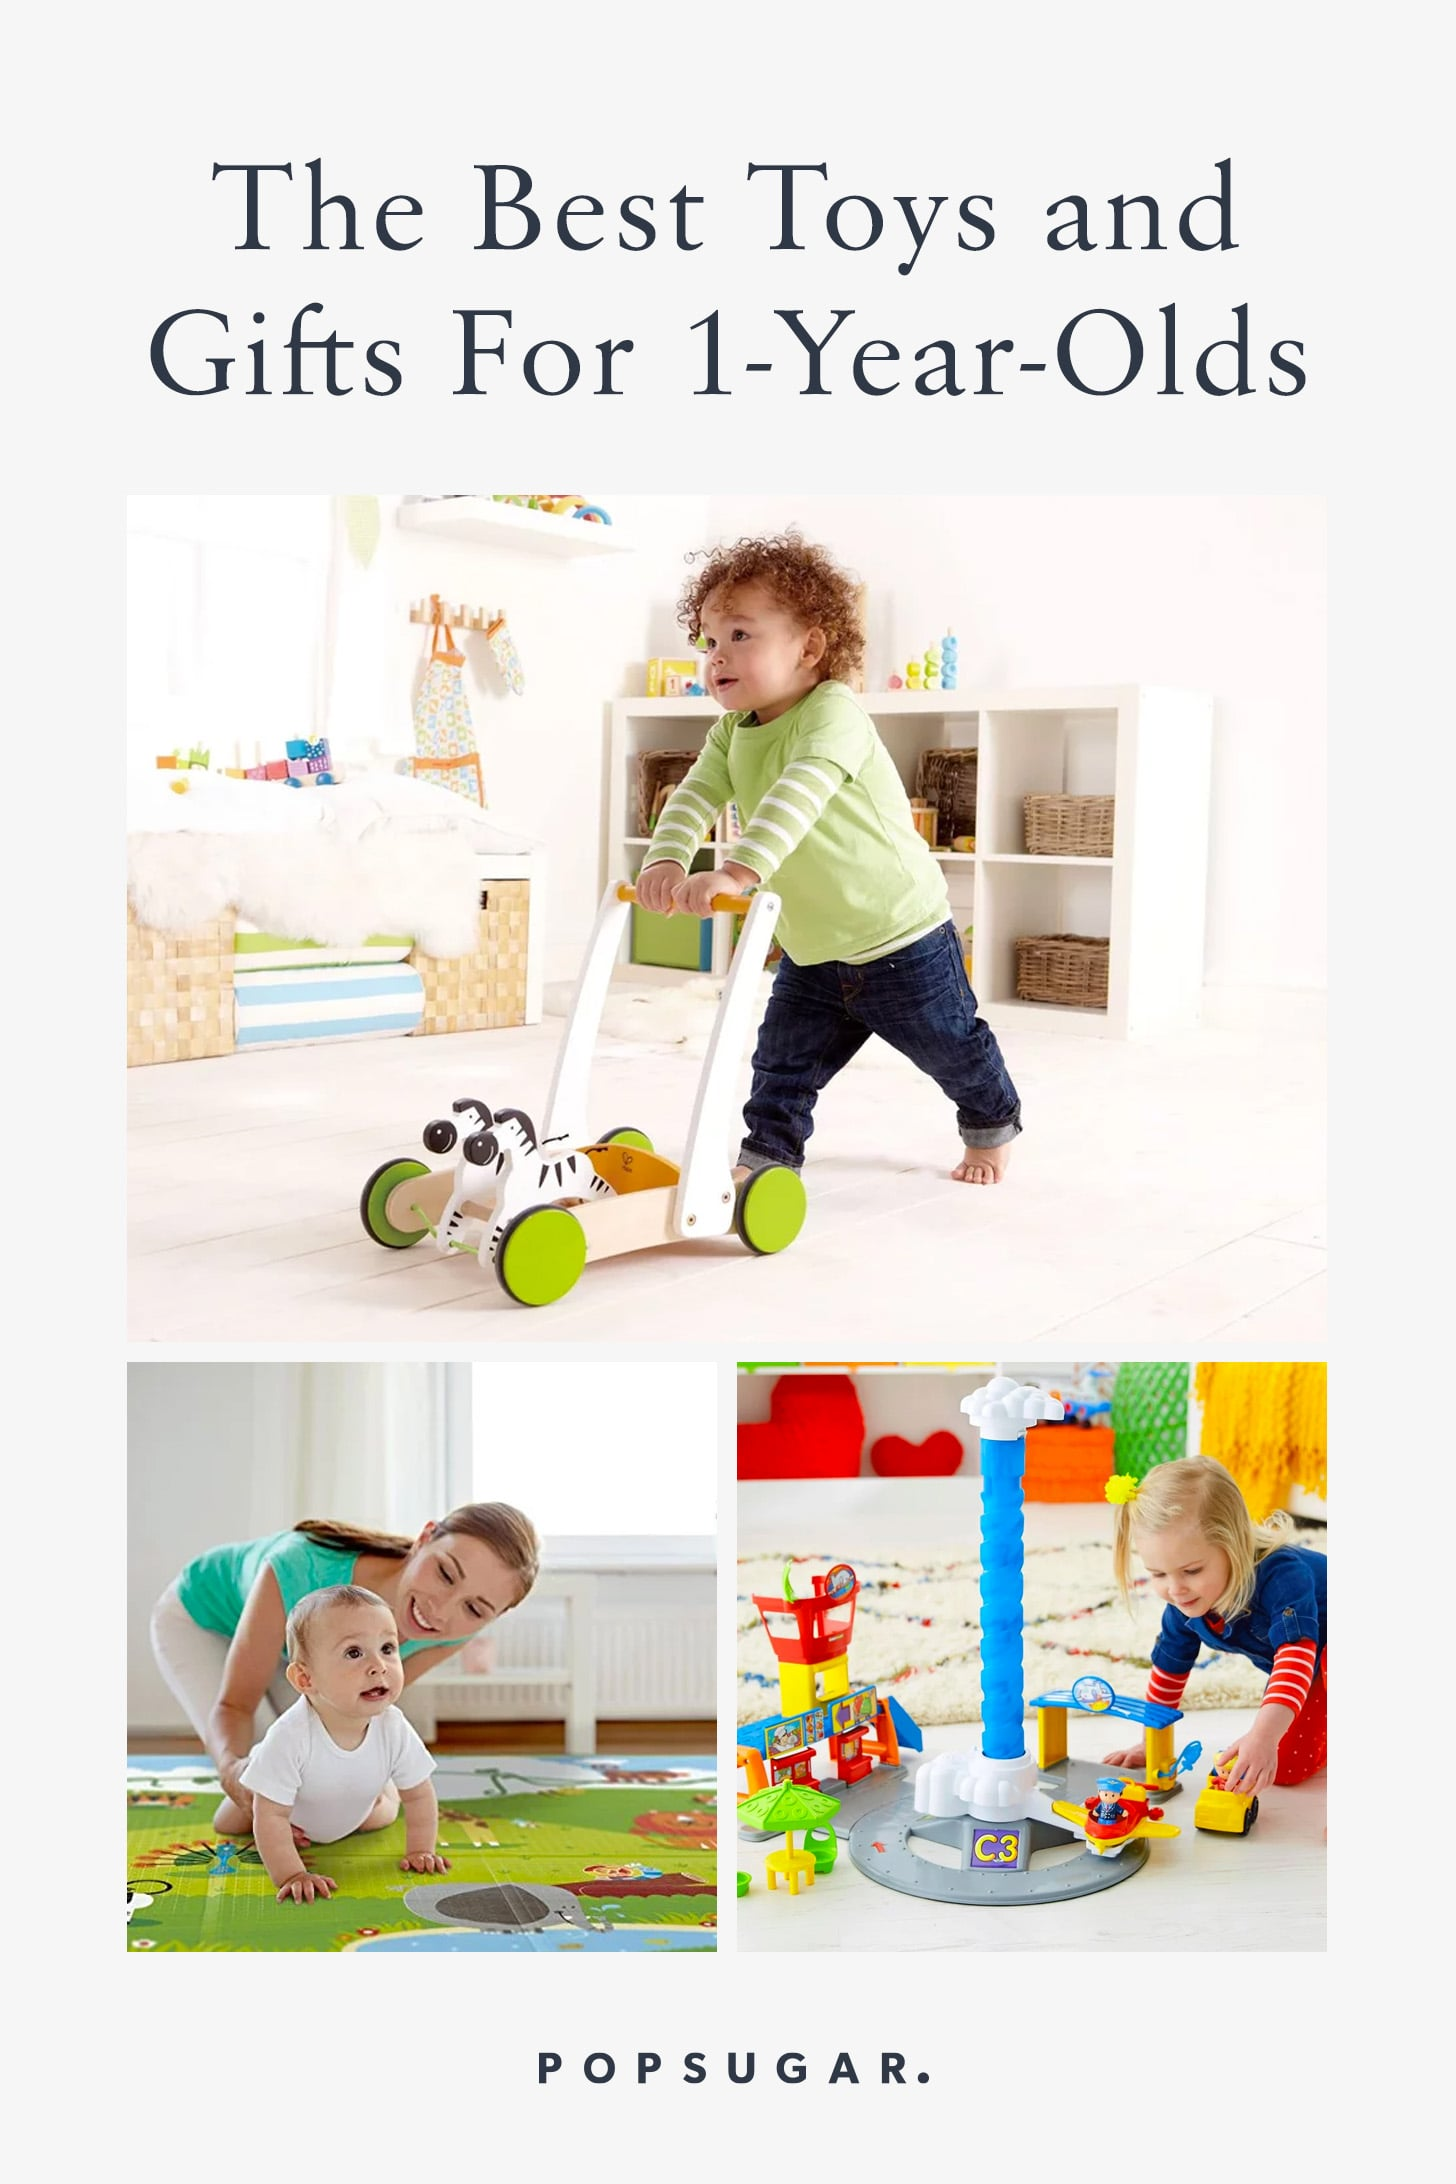 2020 Best Christmas Gifts 12month Old 45+ of the Best Toys and Gift Ideas For a 1 Year Old in 2020